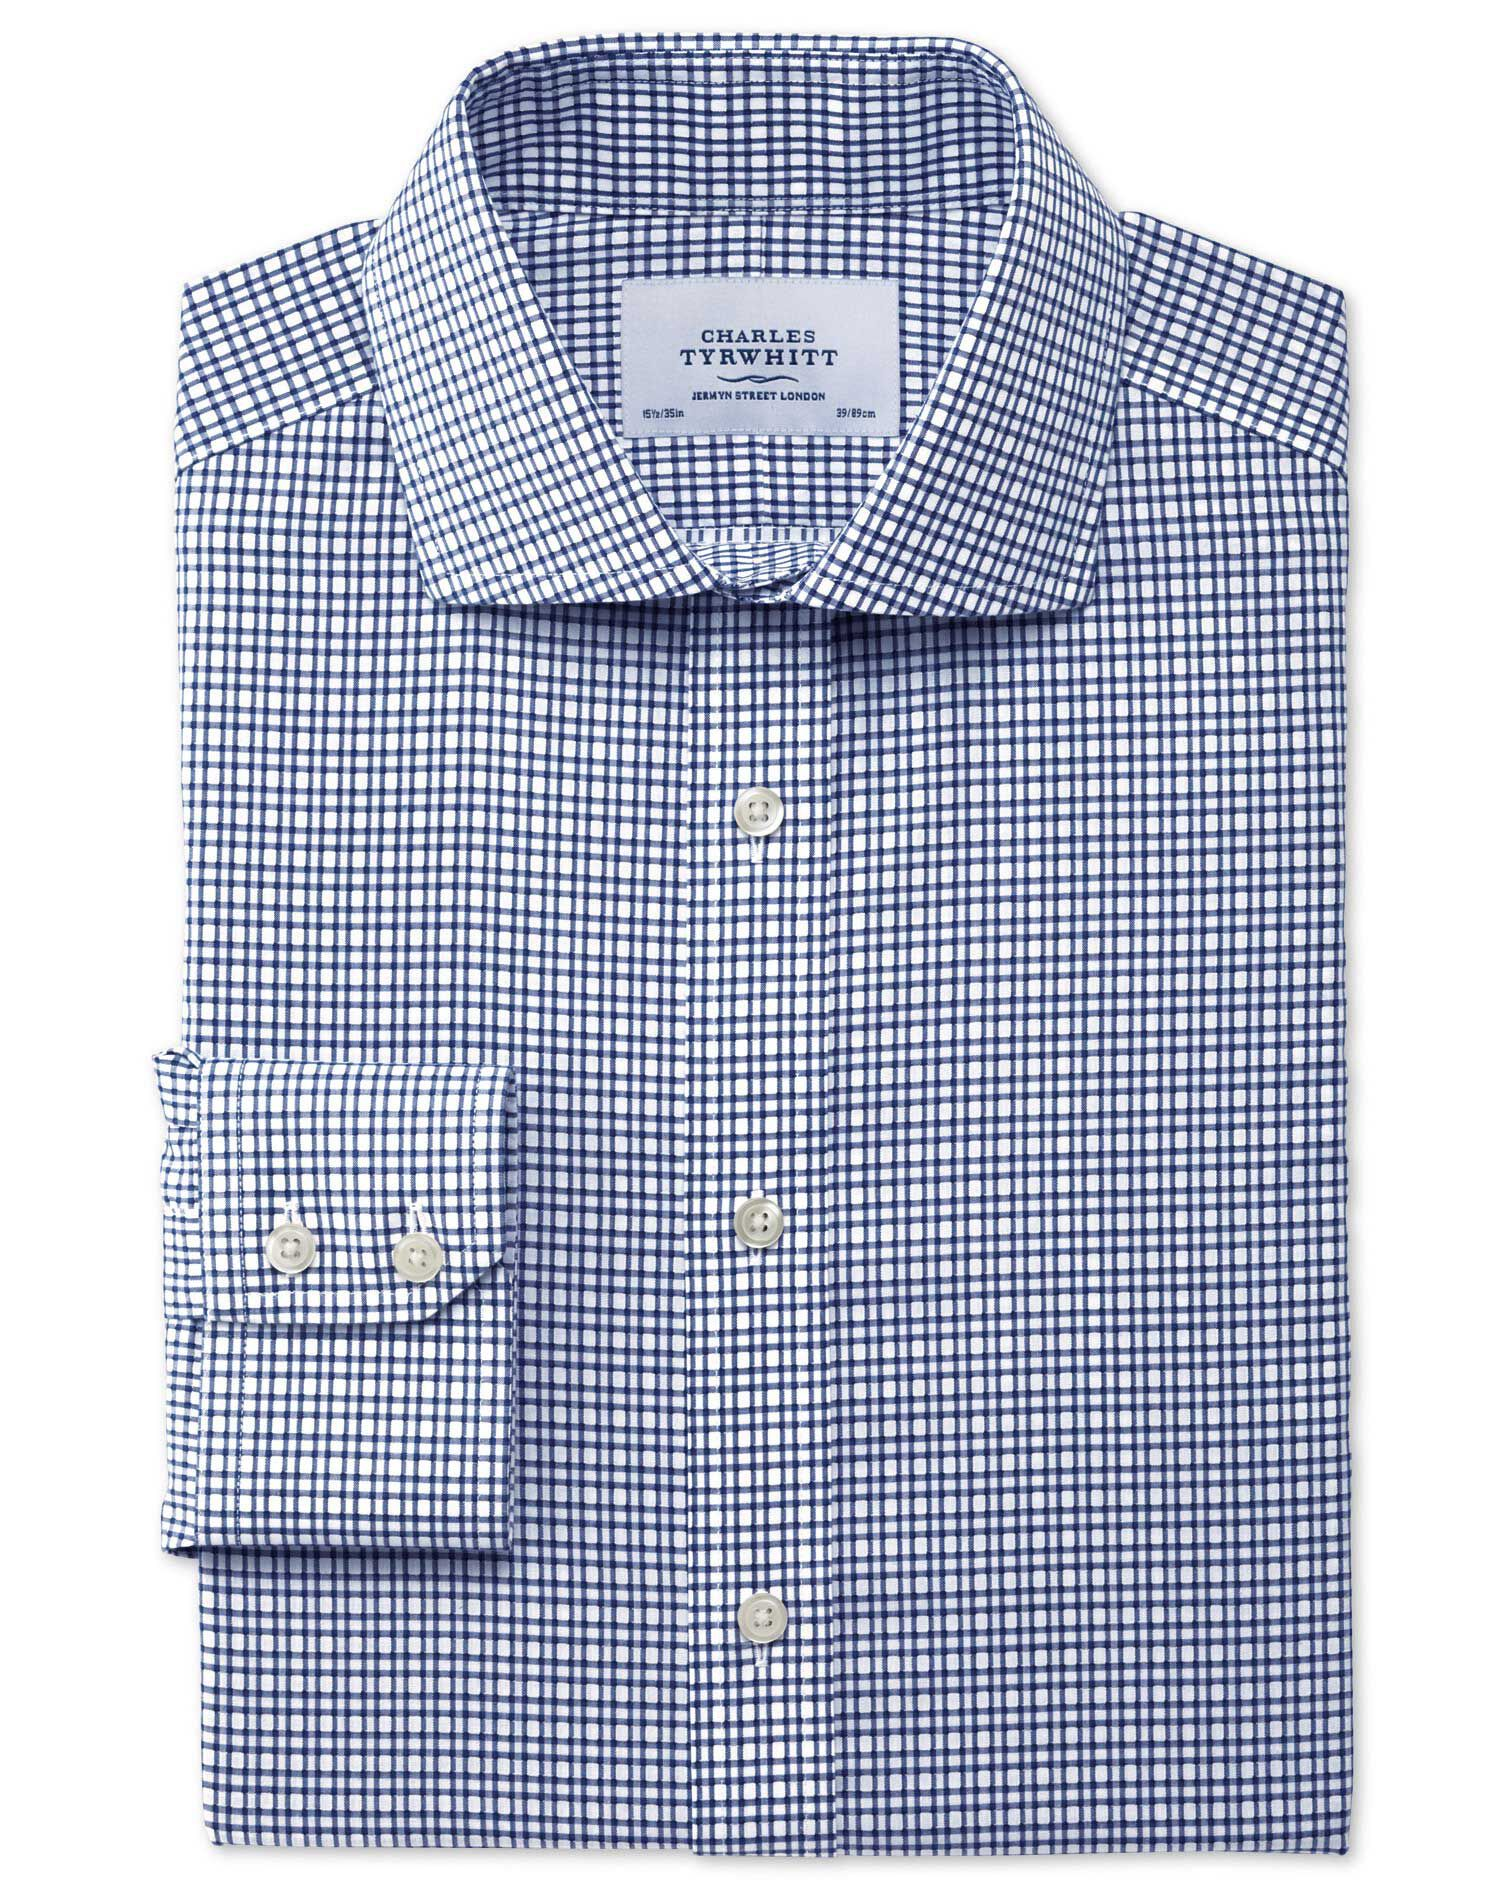 Slim Fit Cutaway Collar Non-Iron Dobby Check Navy Cotton Formal Shirt Single Cuff Size 18/36 by Char